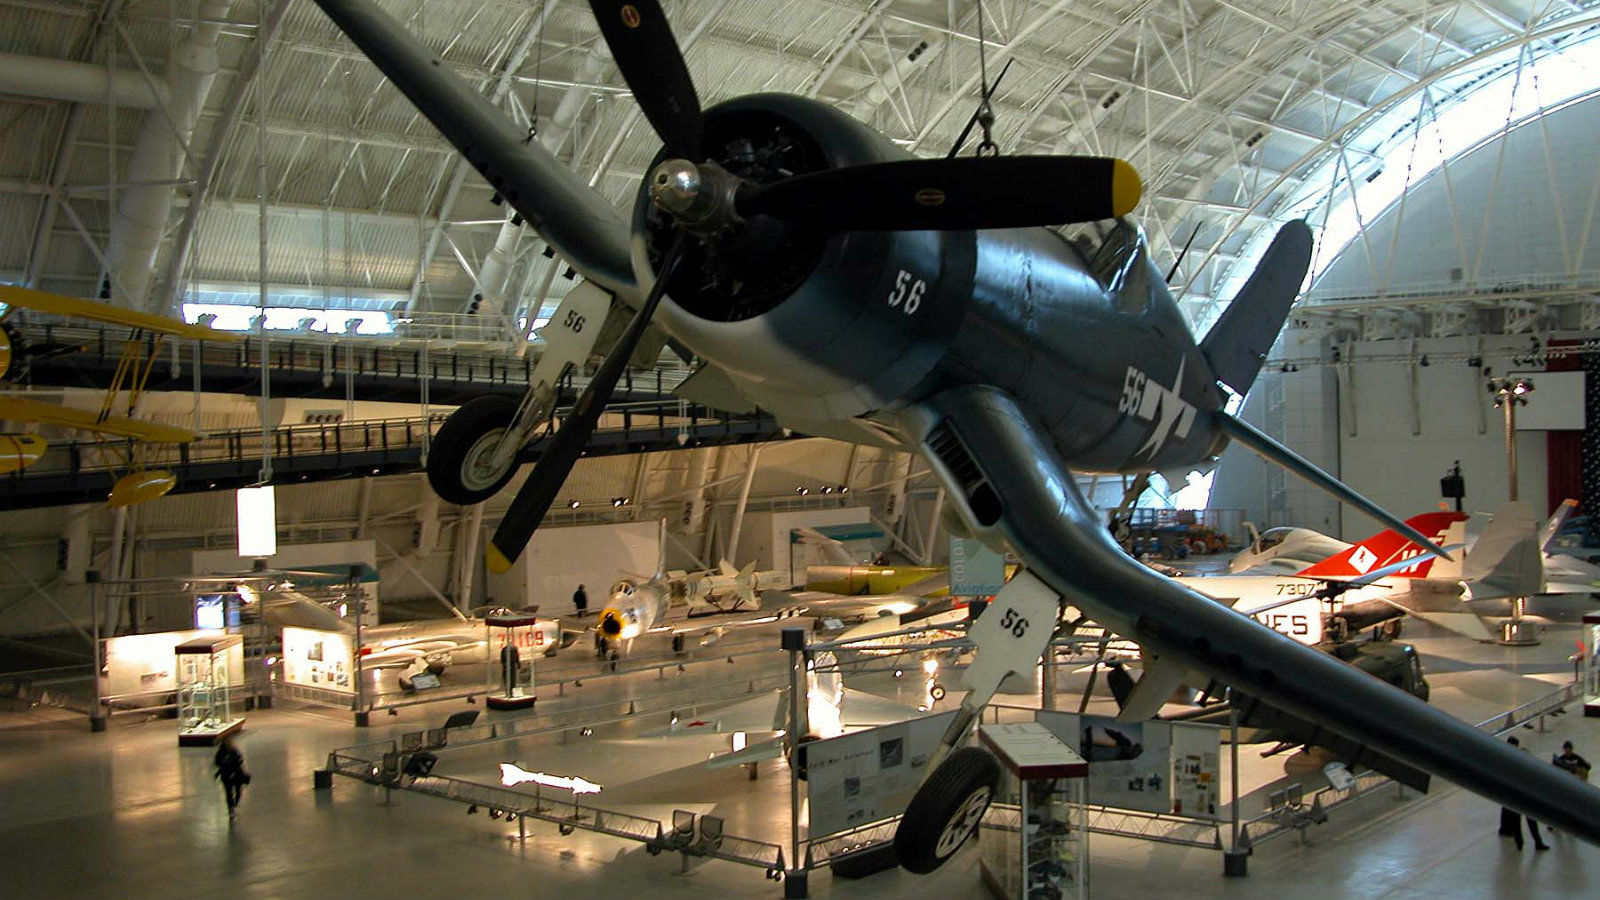 Private family tour of the The National Air & Space Museum on the National Mall